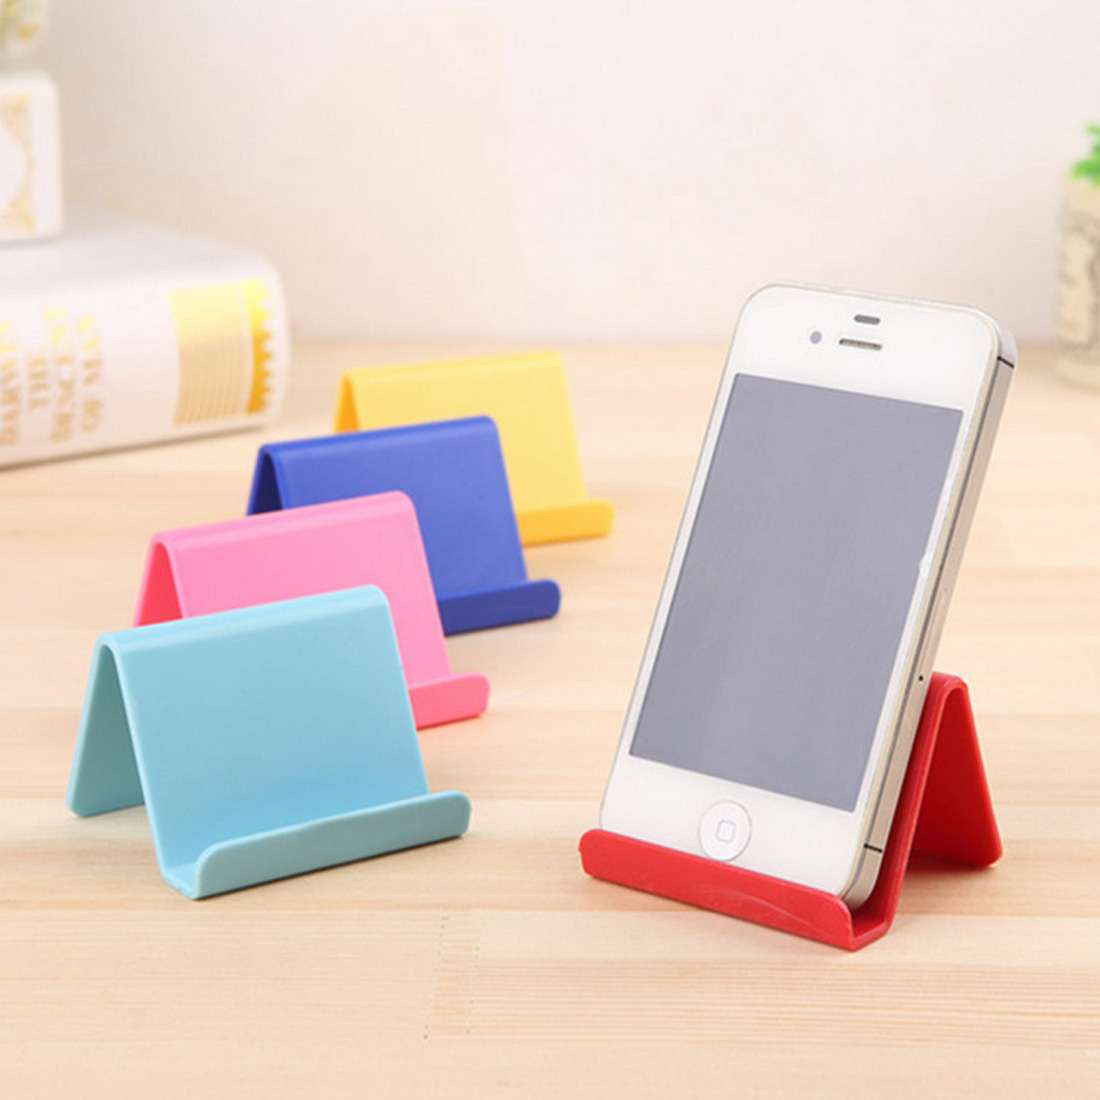 Us 0 61 15 Off Mini Portable Business Card Holder Mobile Phone Candy Fixed Household Goods Plastic Random In Racks